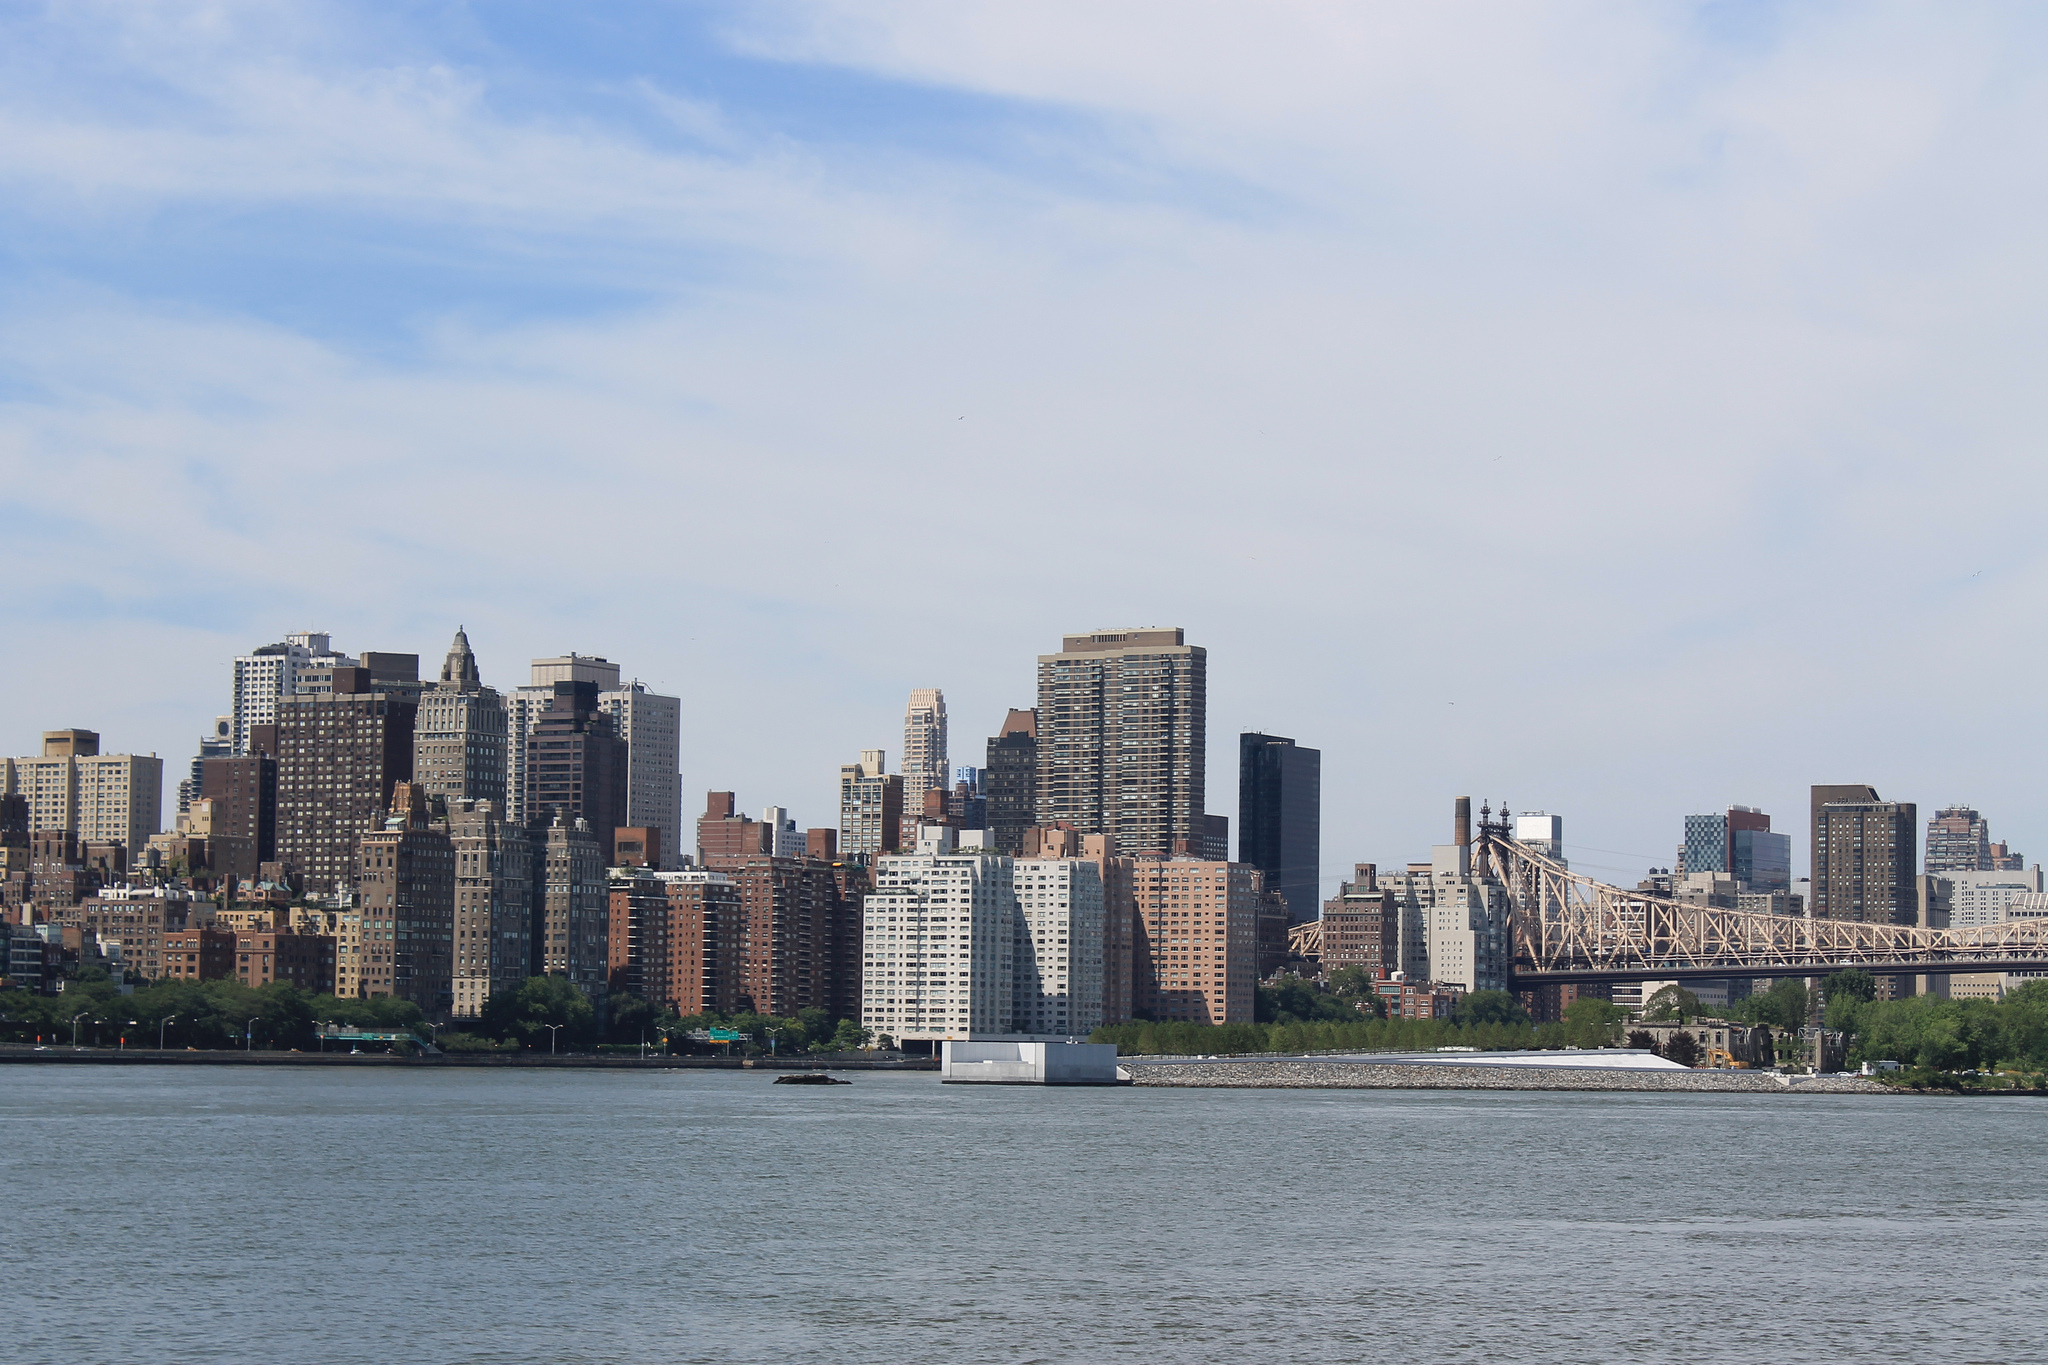 Group wants to build a floating bridge on the East River to help deal with the L train shutdown